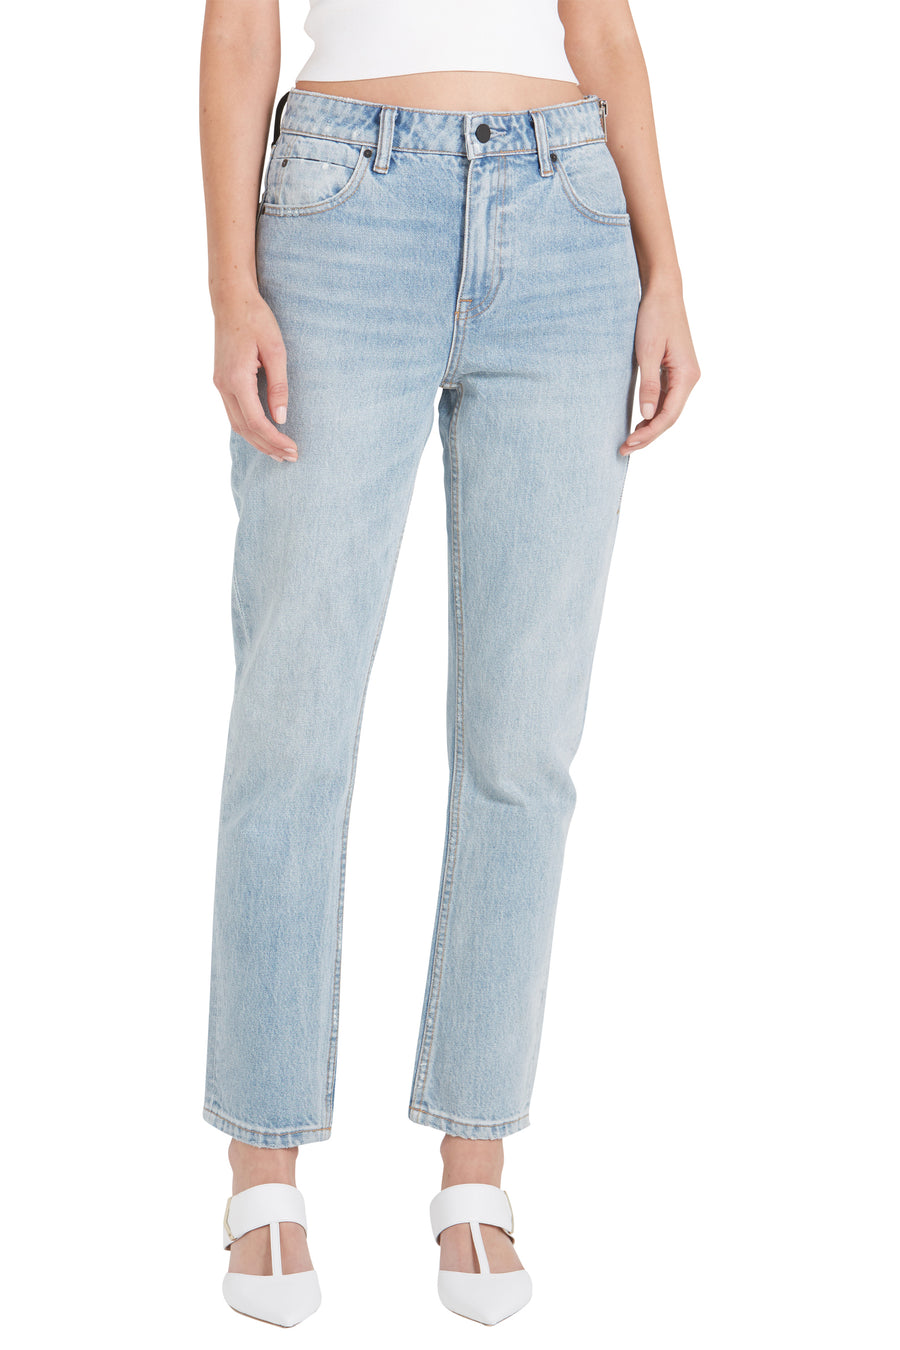 CULT SIDE ZIP - BLEACH DENIM JEANS